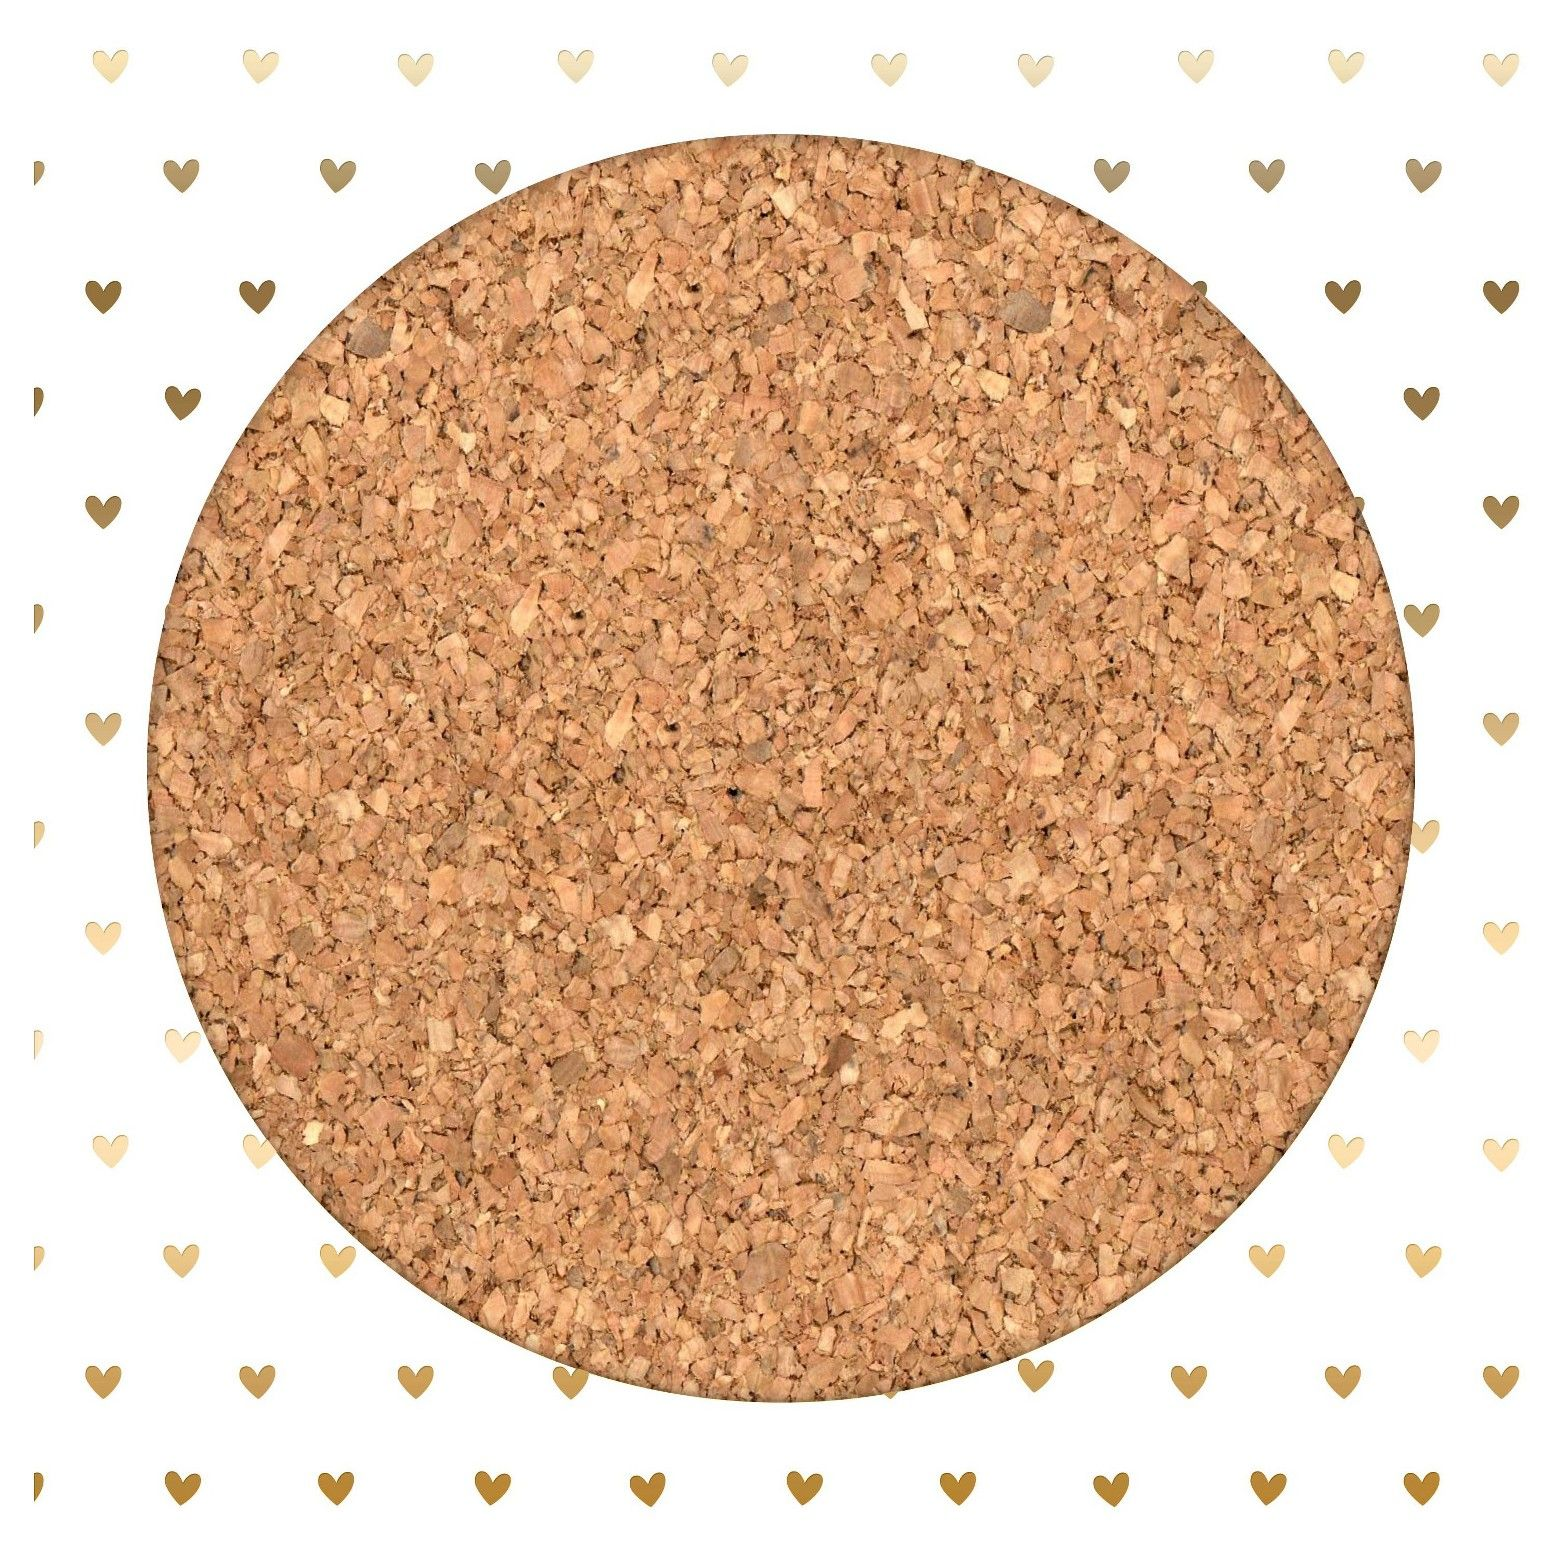 The Gold Heart Cork Board From Pillowfort Is A Smart Place To Display Important Papers Photos Or Artwork Hang The Pin Pillow Fort Cork Board Kids Wall Decor